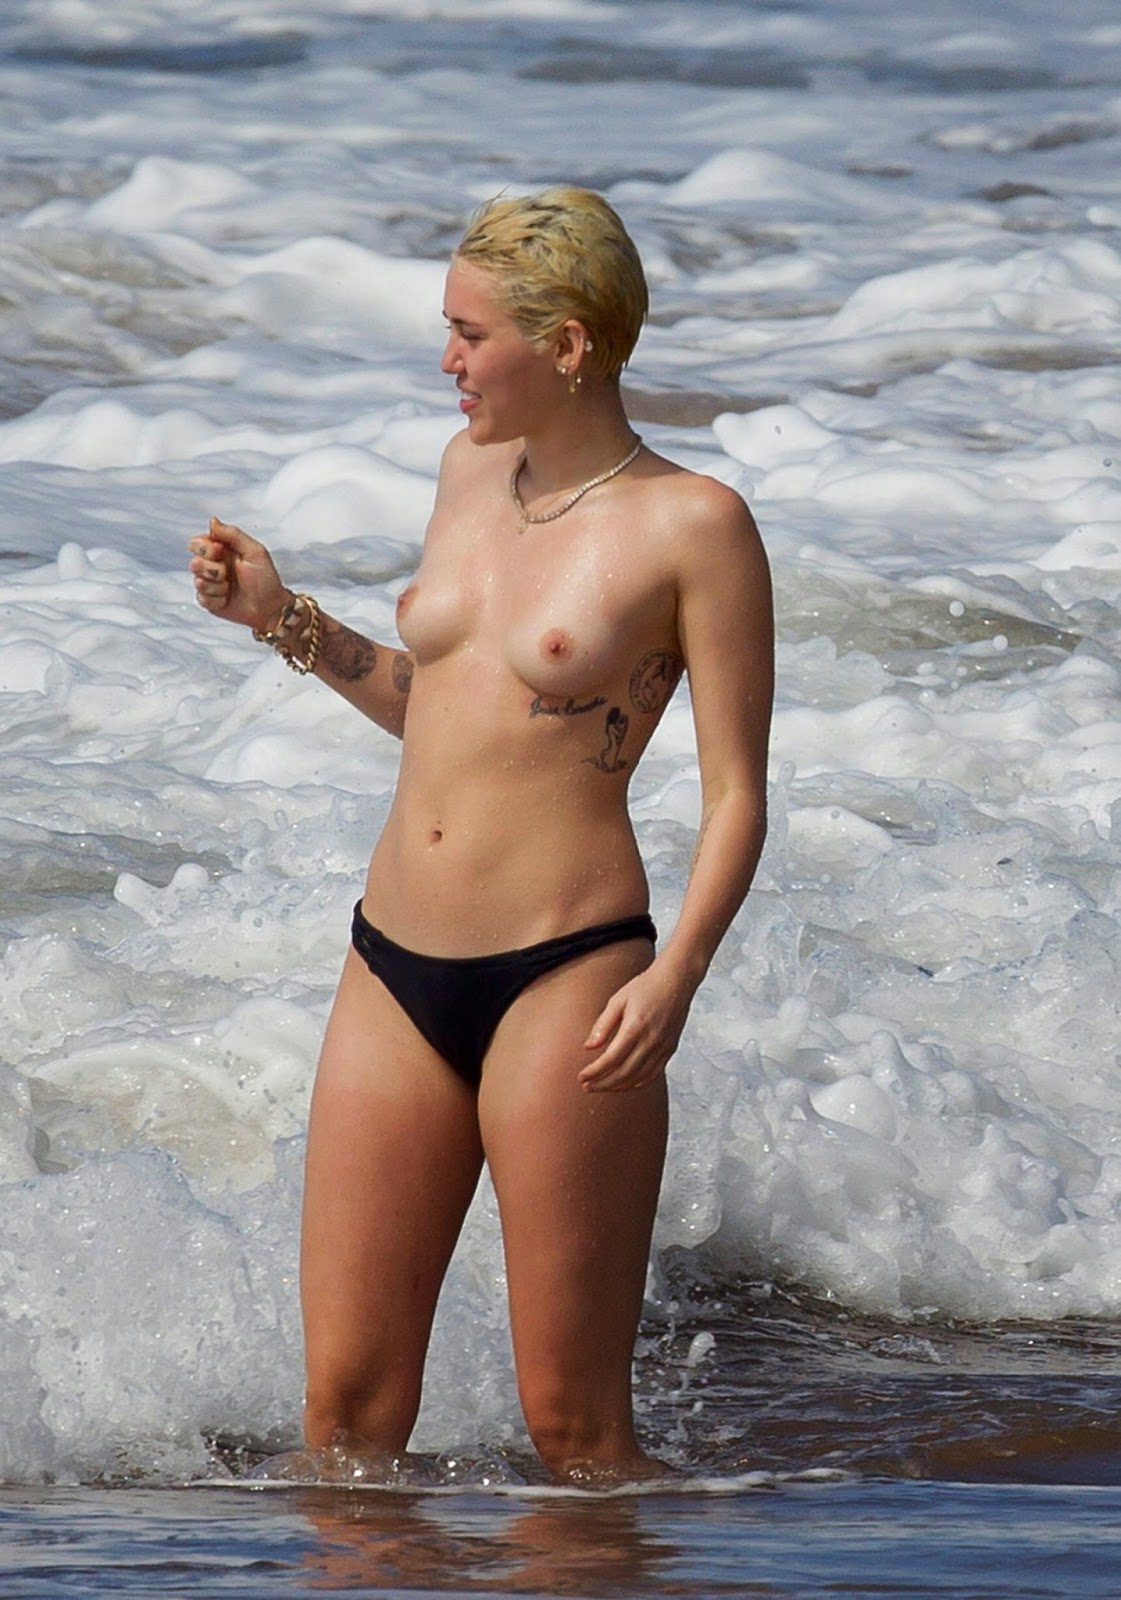 Miley Cyrus Naked Pictures Uncensored